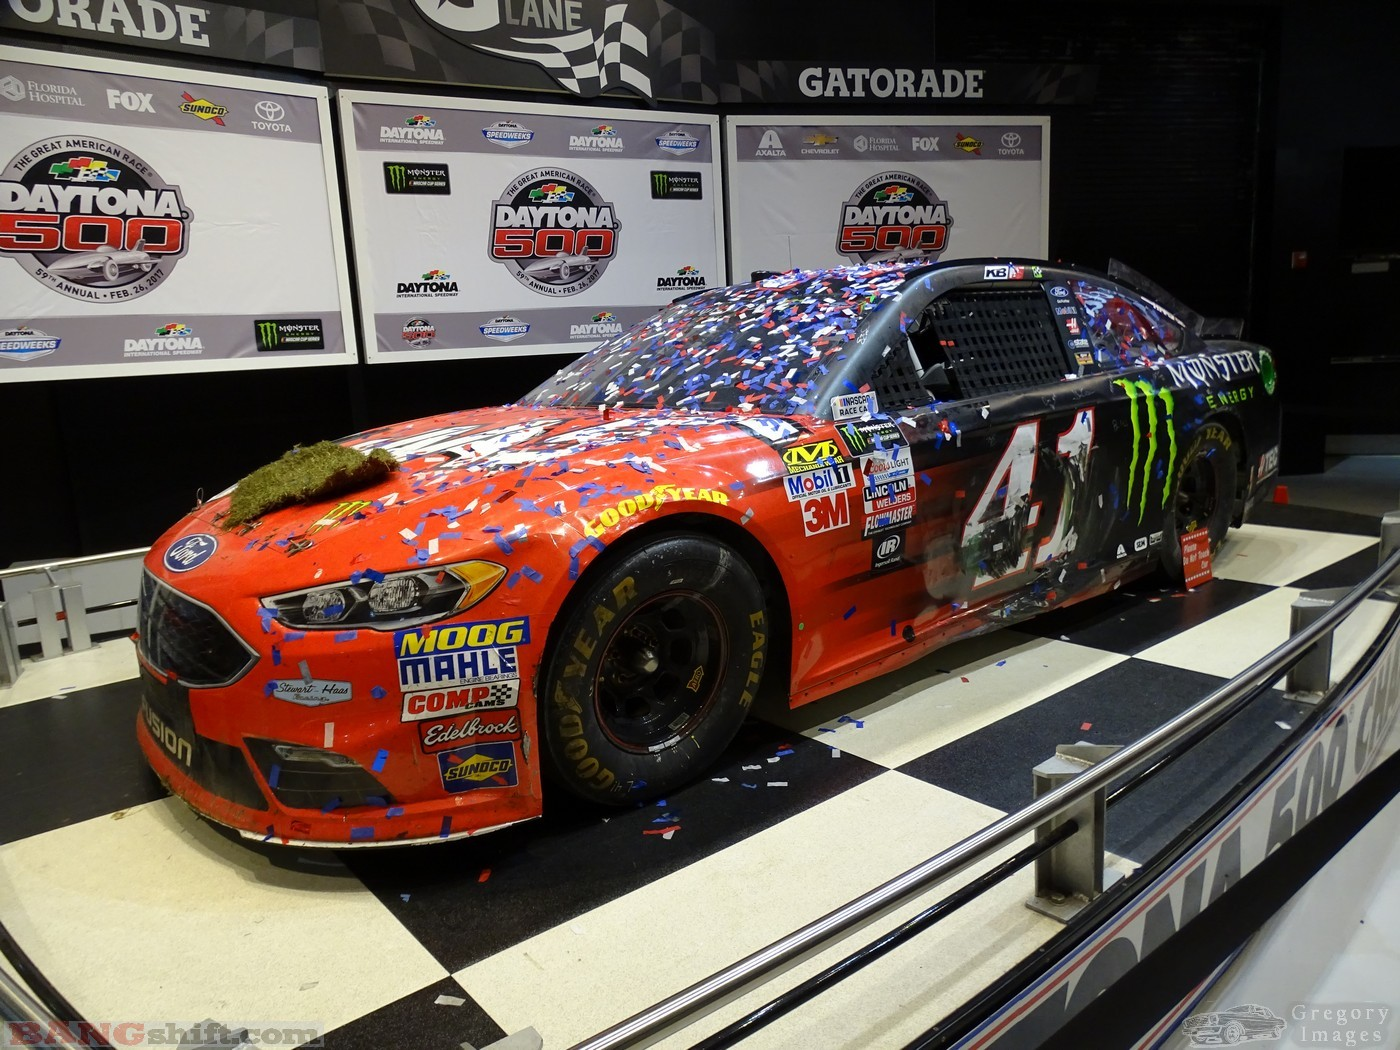 Come With Us On A Tour Of Daytona International Speedway – Killer Photos and History